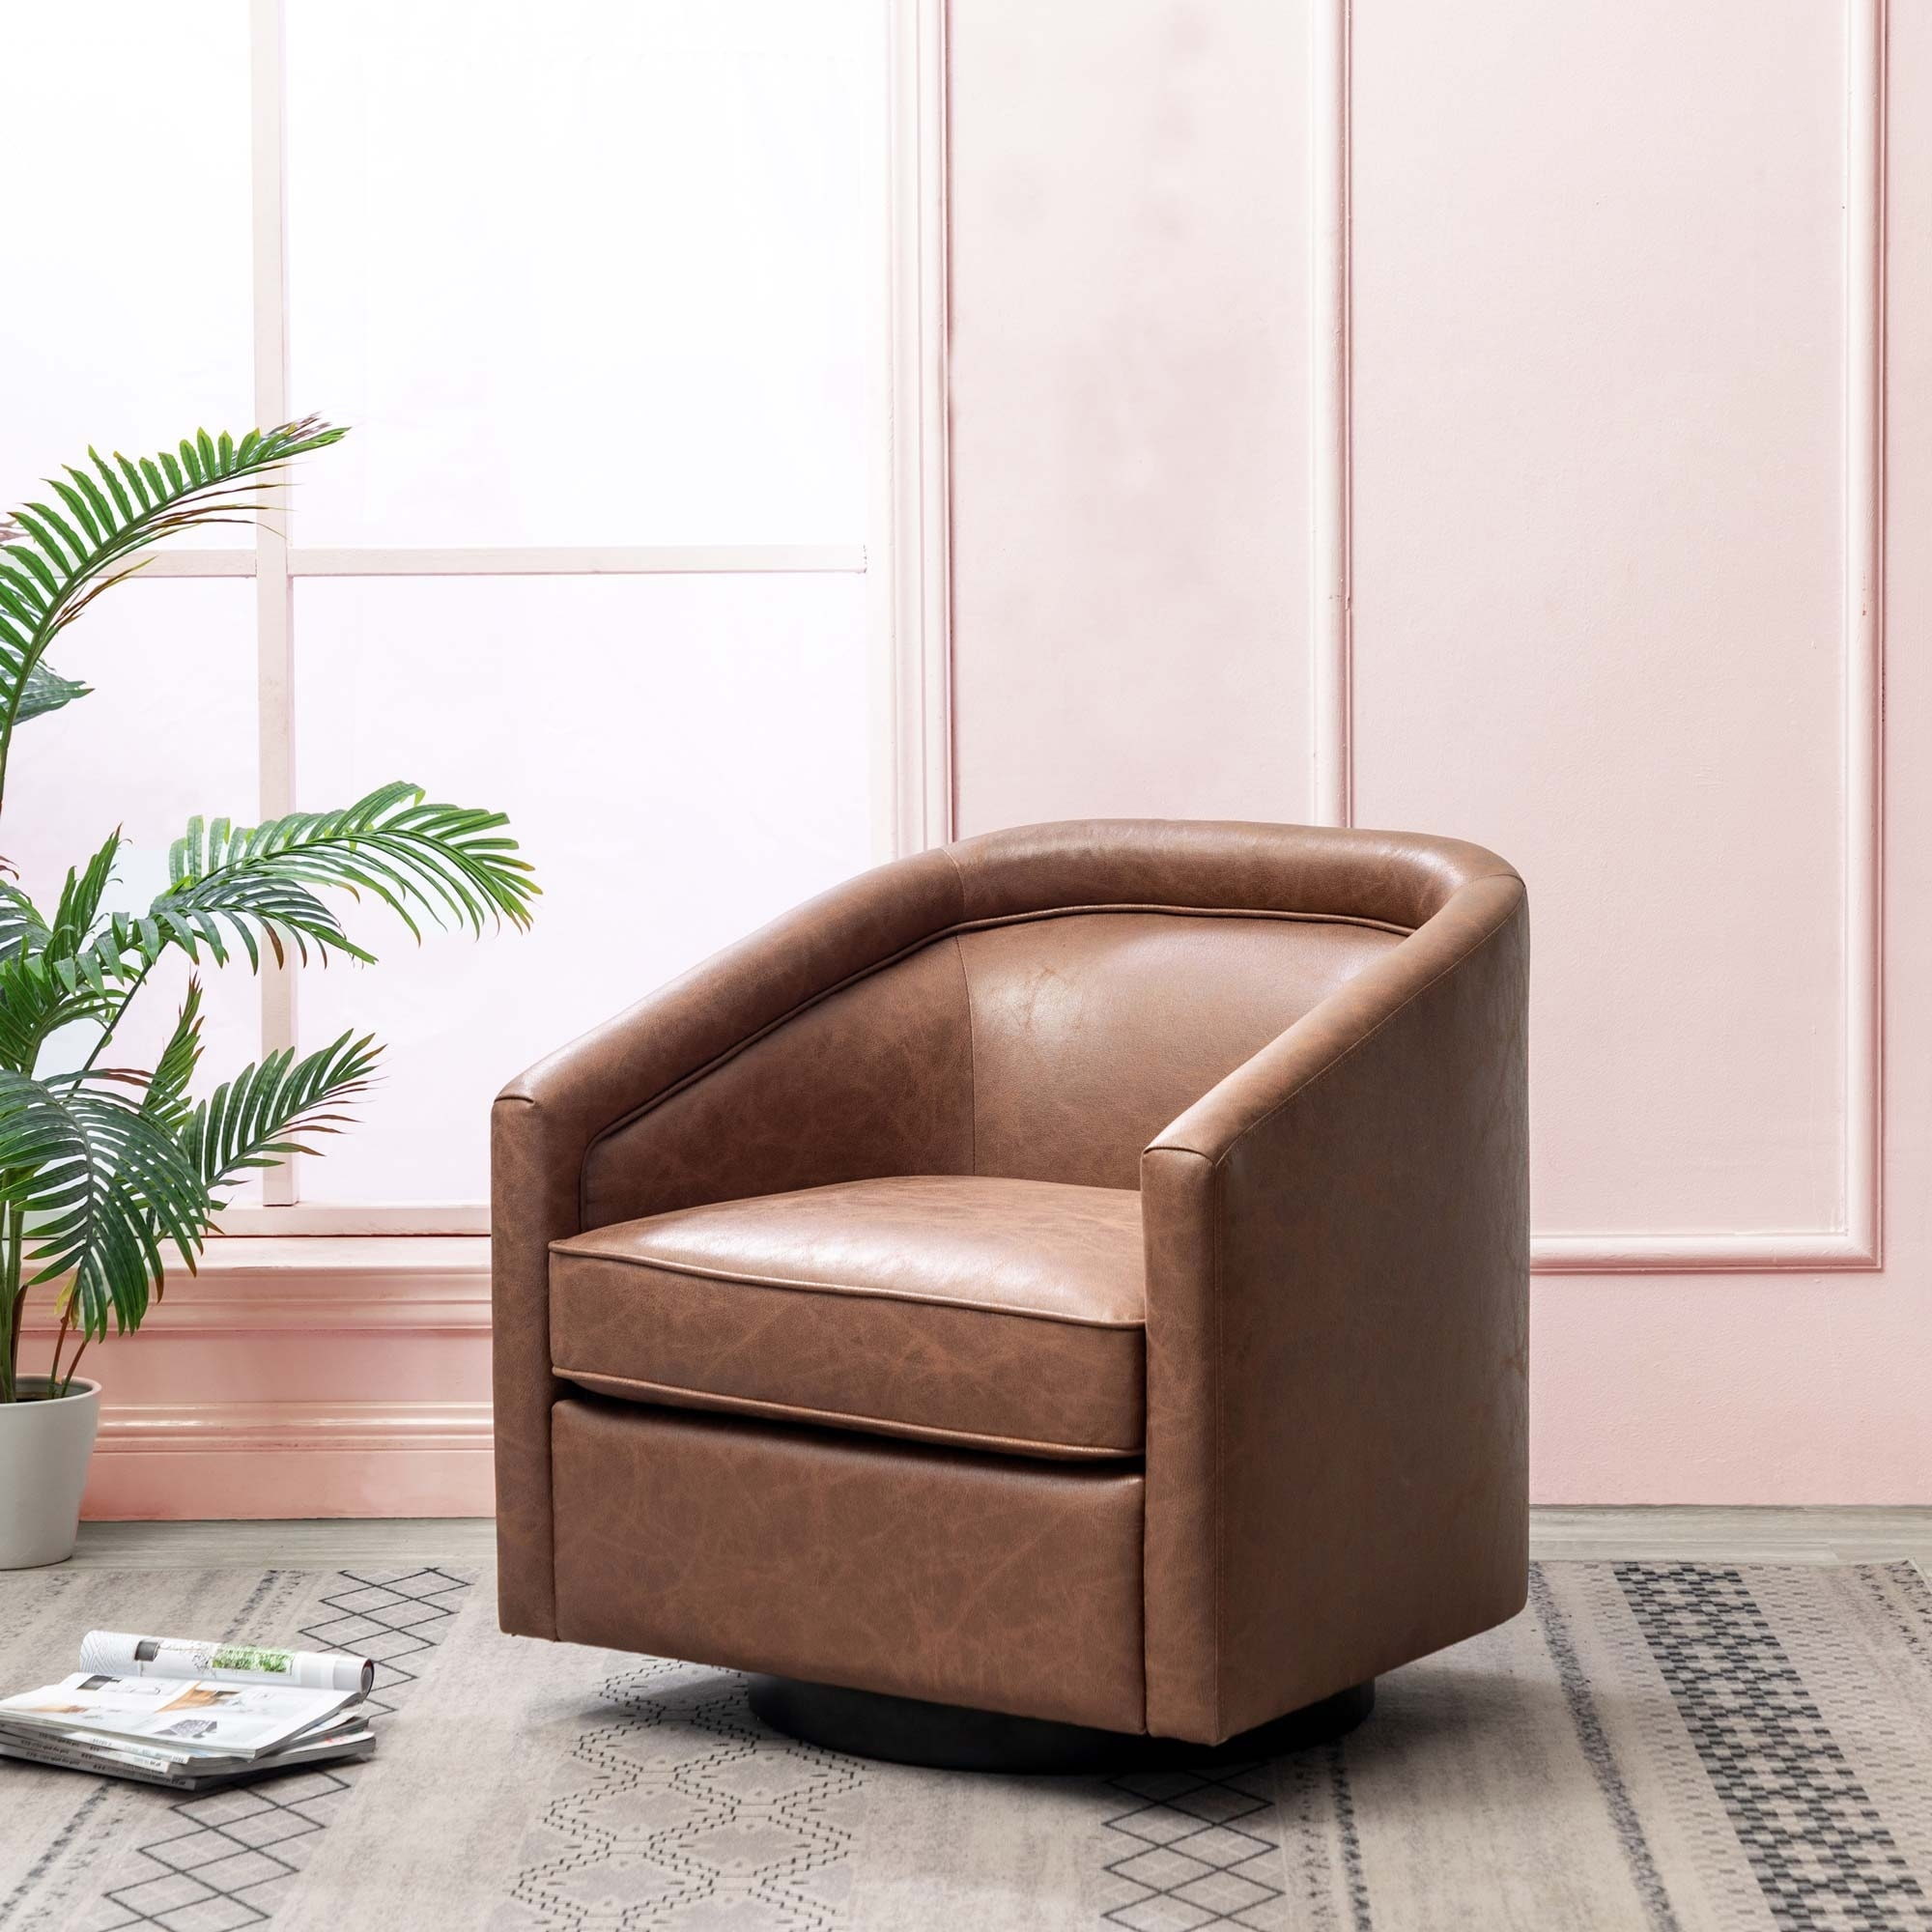 Kotter Home Faux Leather Swivel Barrel Chair Regarding Faux Leather Barrel Chairs (View 8 of 15)